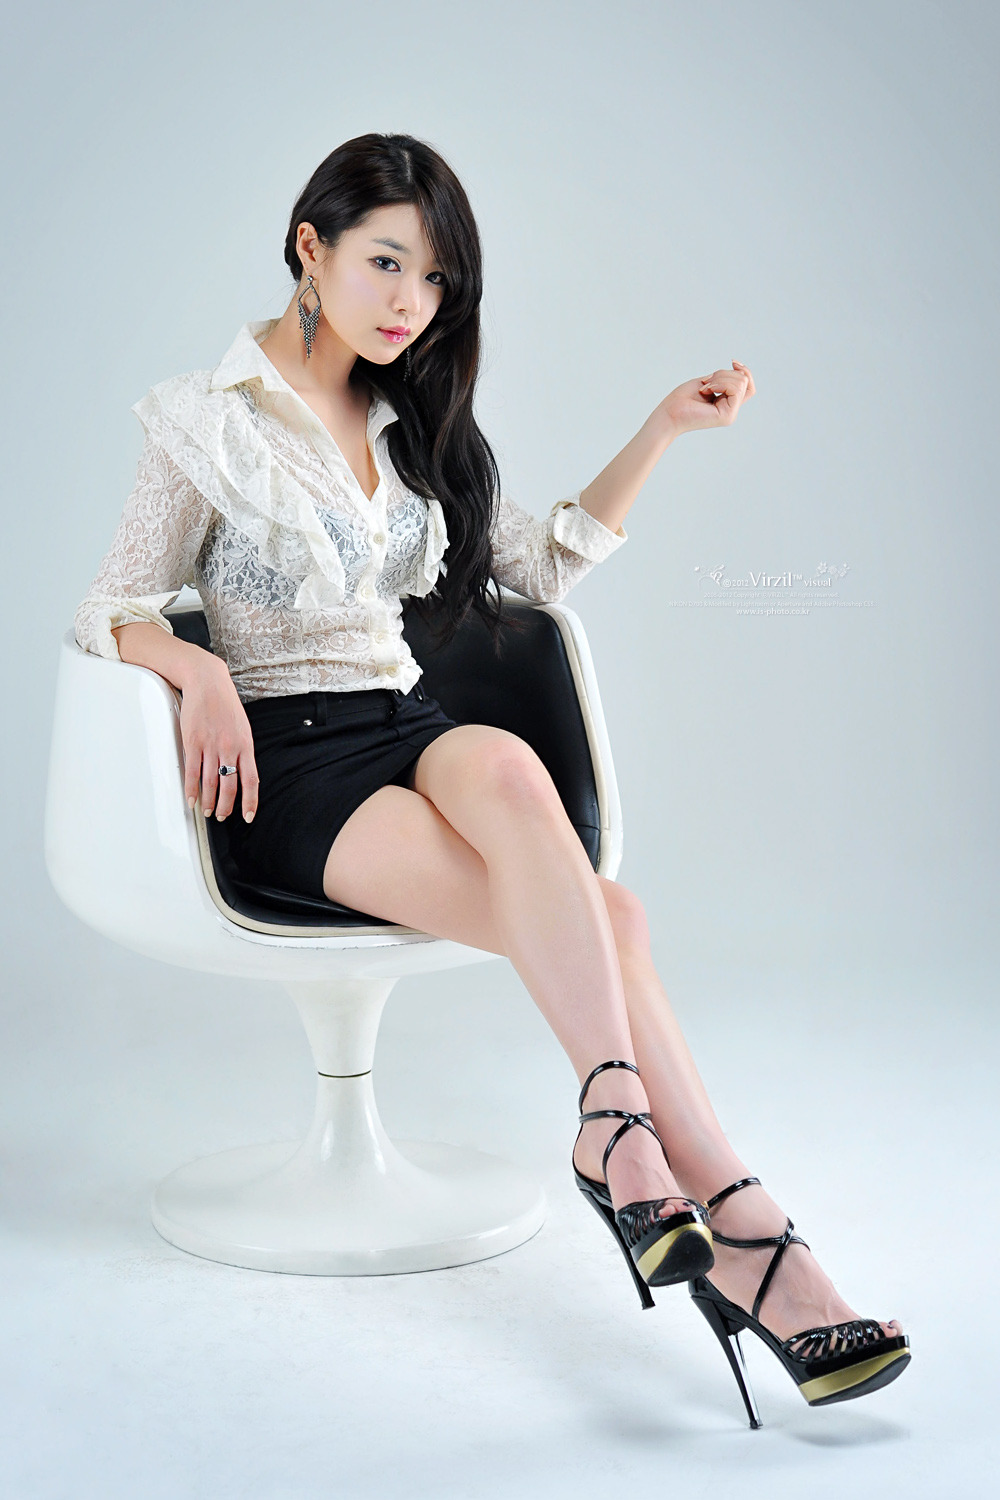 OMG!!! Too Hot to Handle! Sexy Office Lady Lee Eun Seo (이은서)!